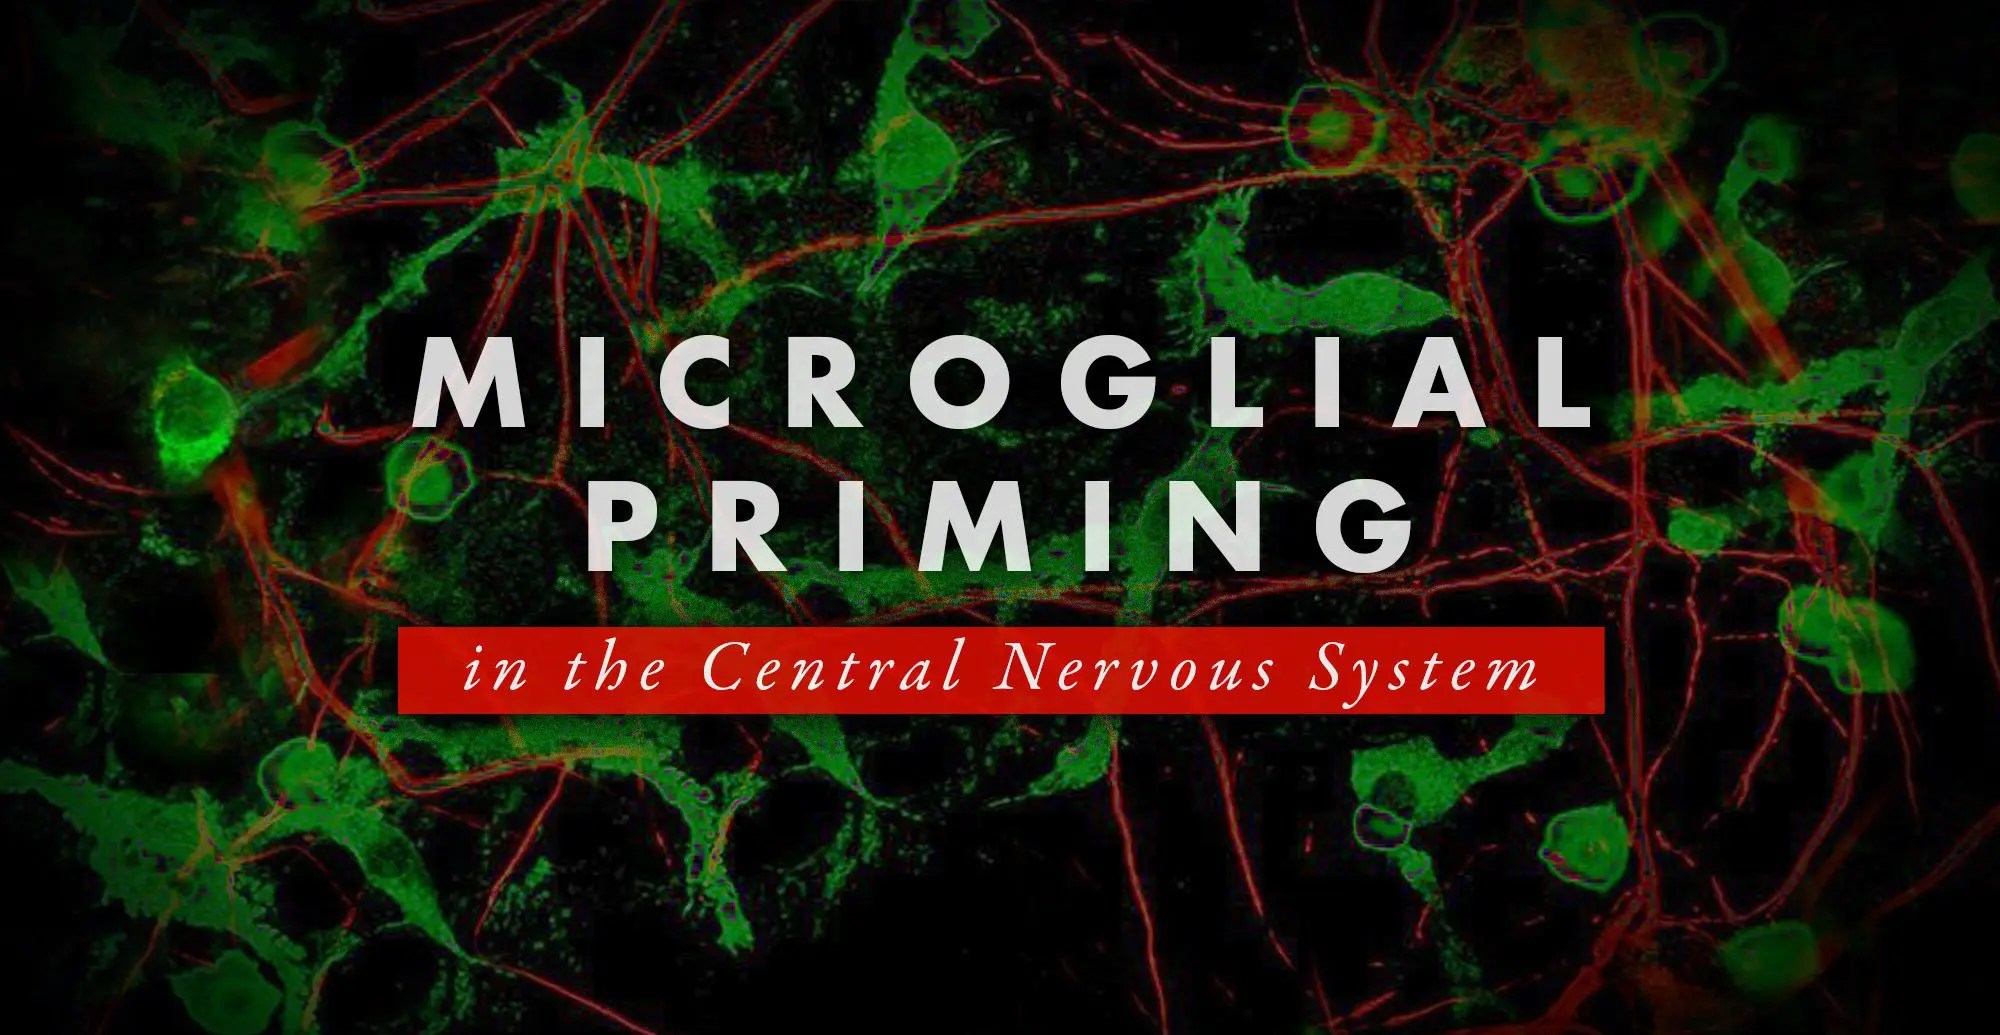 Microglial Priming in the Central Nervous System